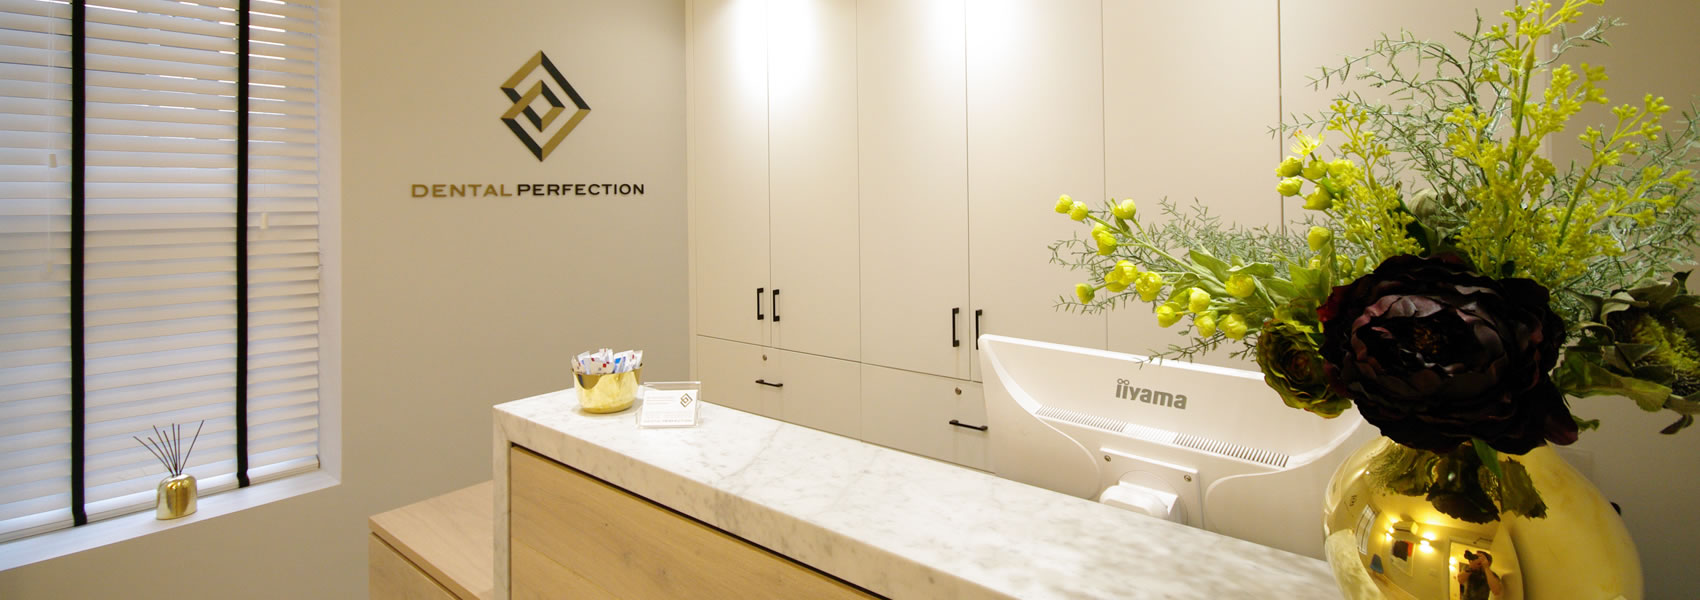 Hampstead Dental Practice Dental Perfection